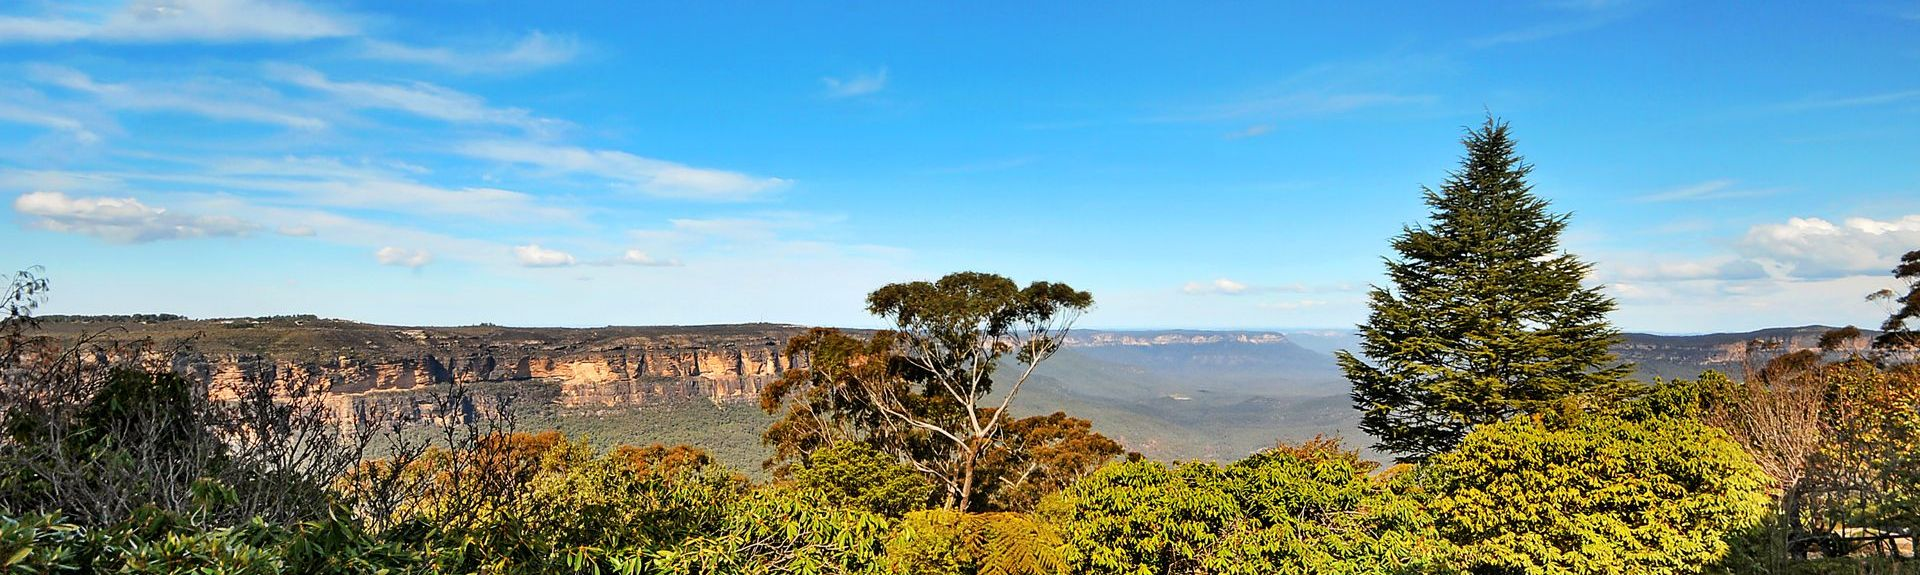 Katoomba, New South Wales, Australia